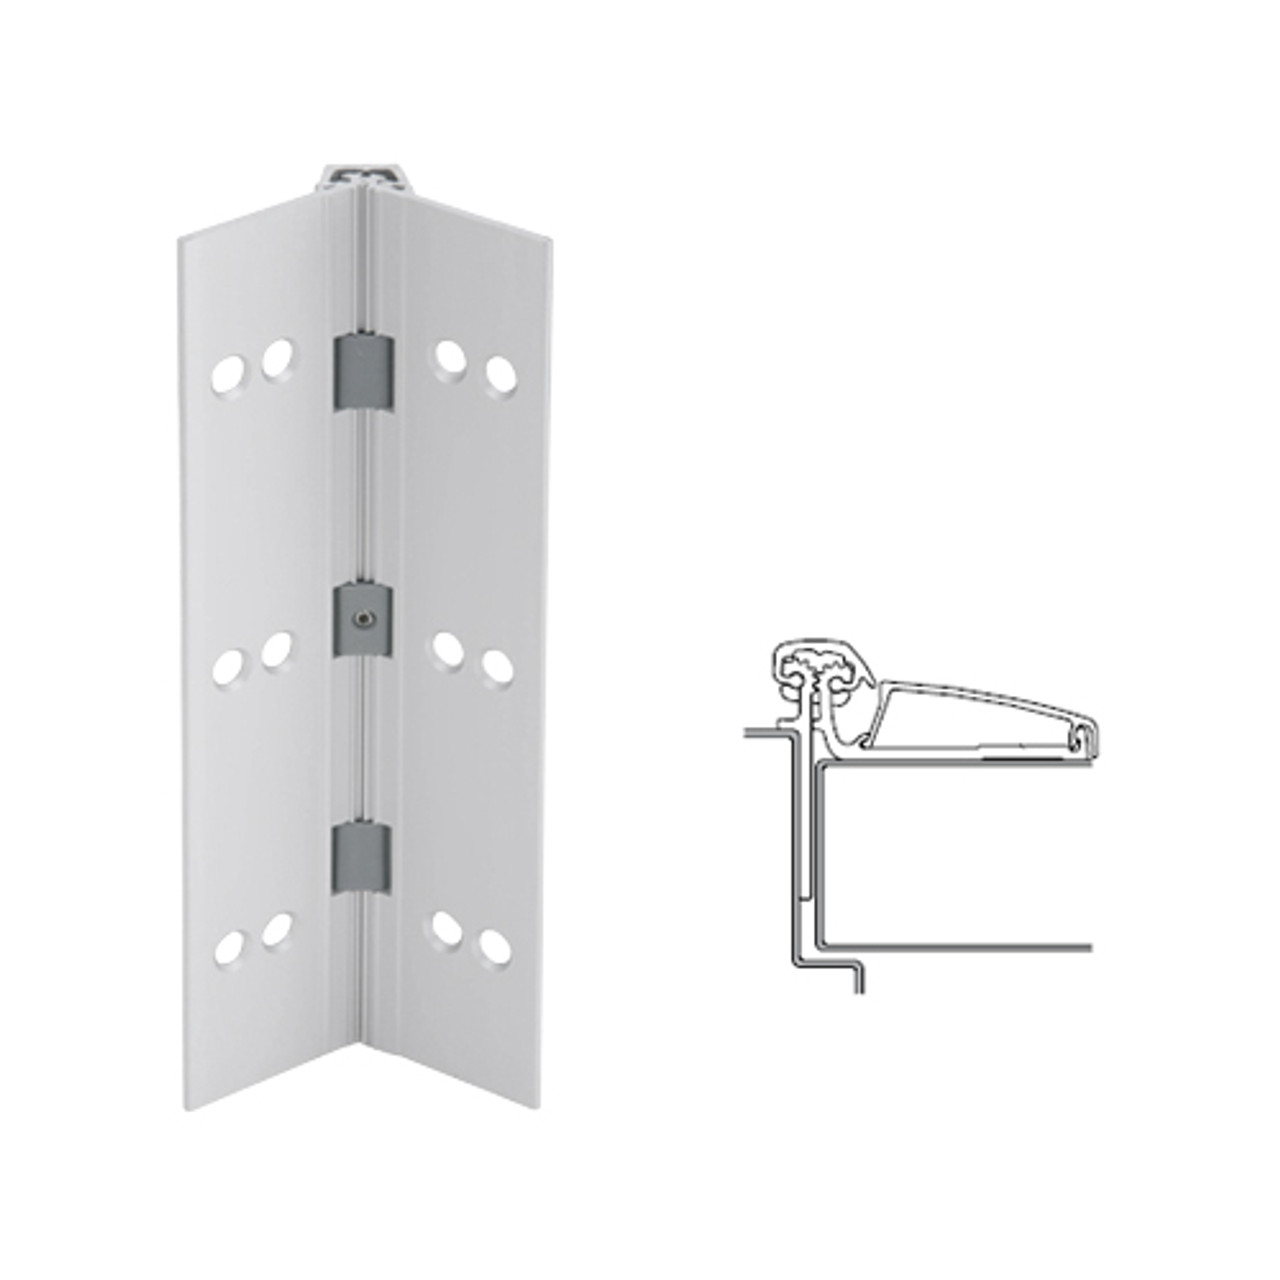 045XY-US28-85 IVES Adjustable Half Surface Continuous Geared Hinges in Satin Aluminum